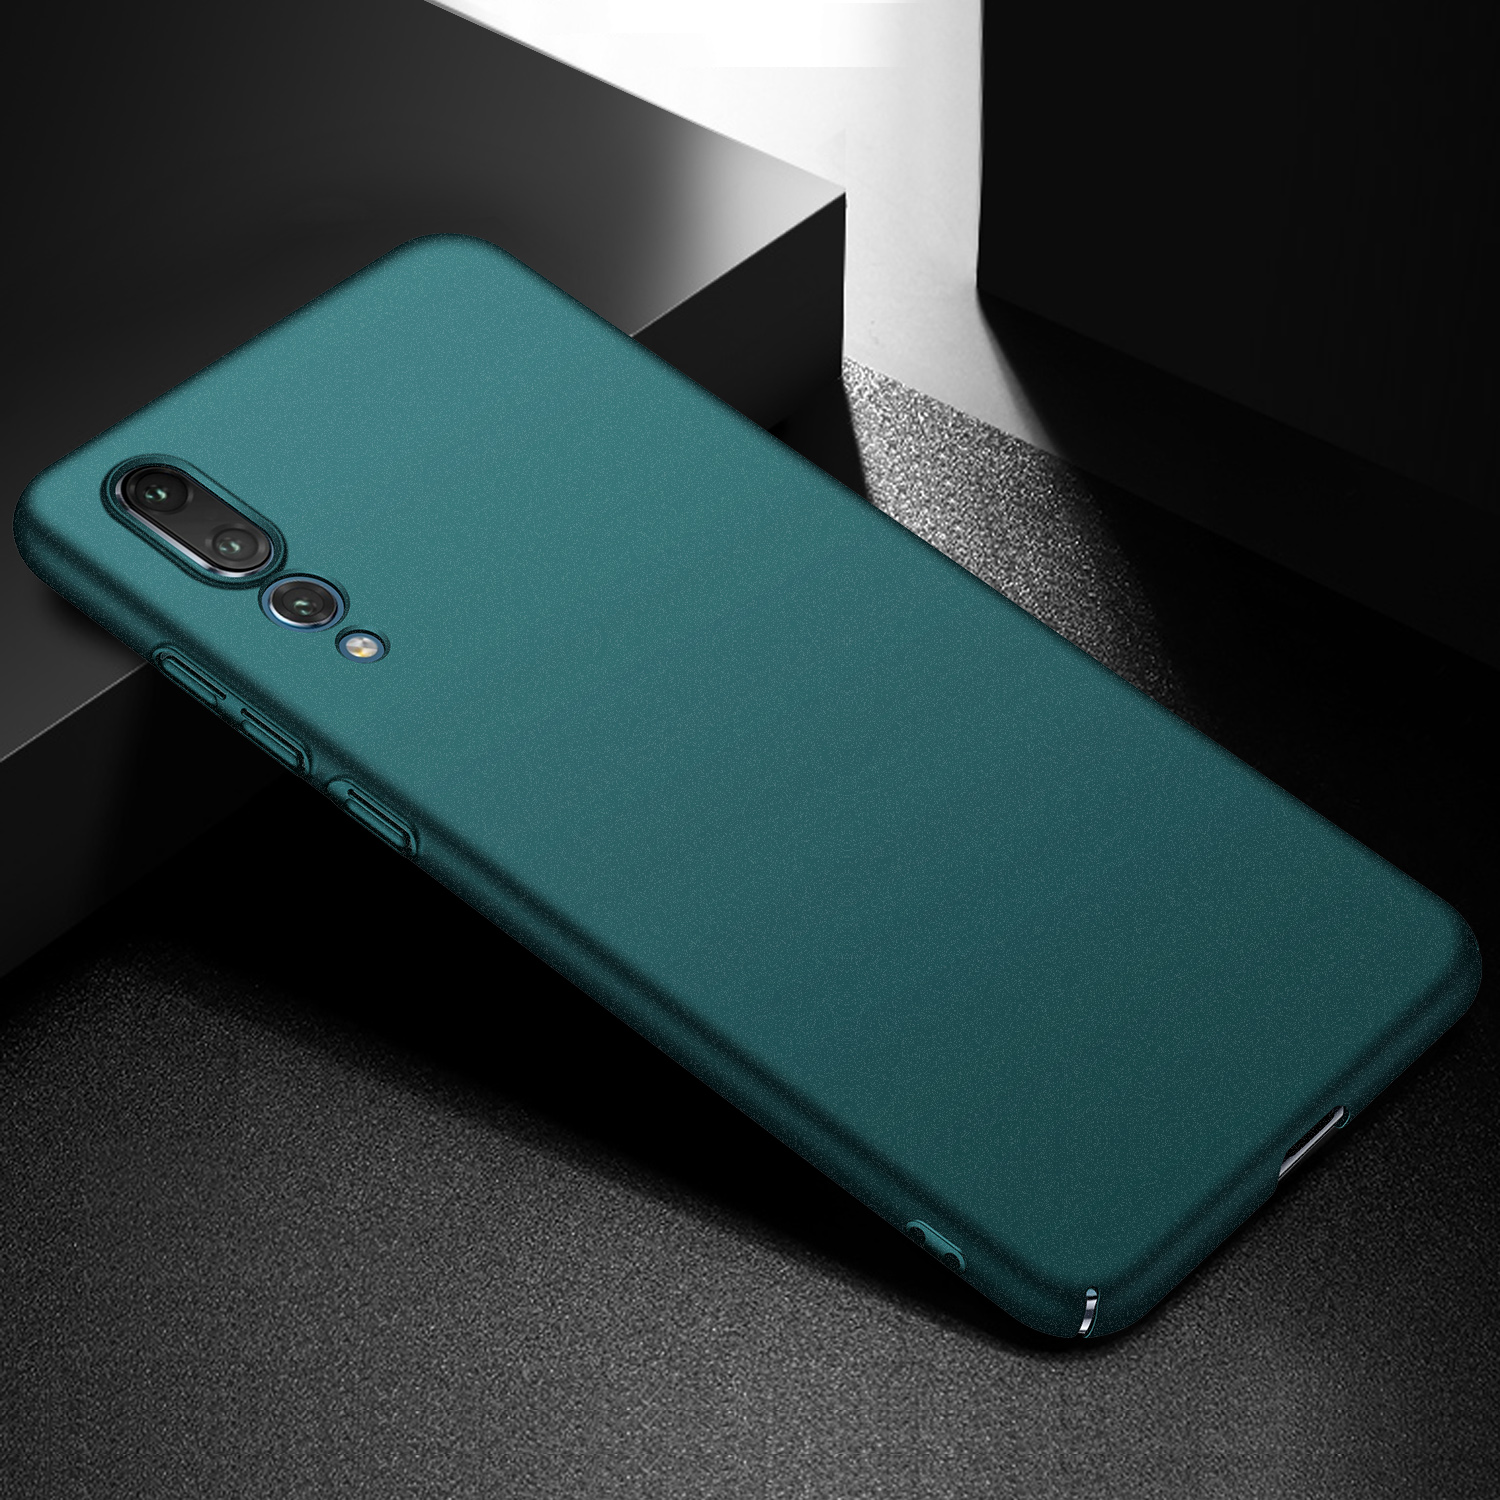 Image 5 - For Huawei P20 Pro P30 Pro Case, Ultra Thin Minimalist Slim Protective Phone Case Back Cover For Huawei P20 Lite-in Fitted Cases from Cellphones & Telecommunications